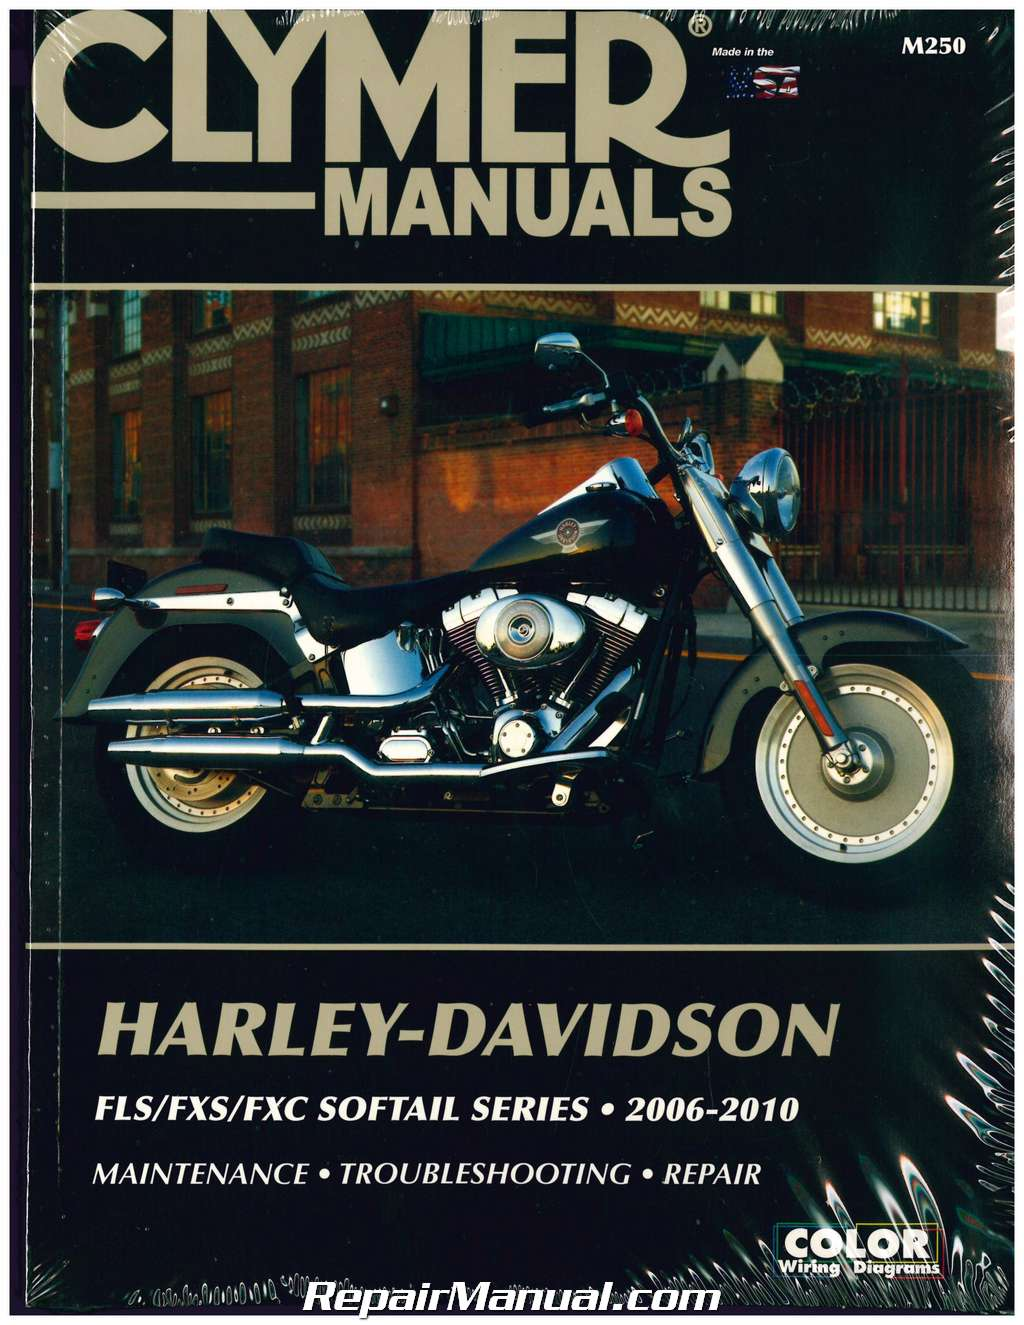 harley davidson manuals service repair manual for free. Black Bedroom Furniture Sets. Home Design Ideas